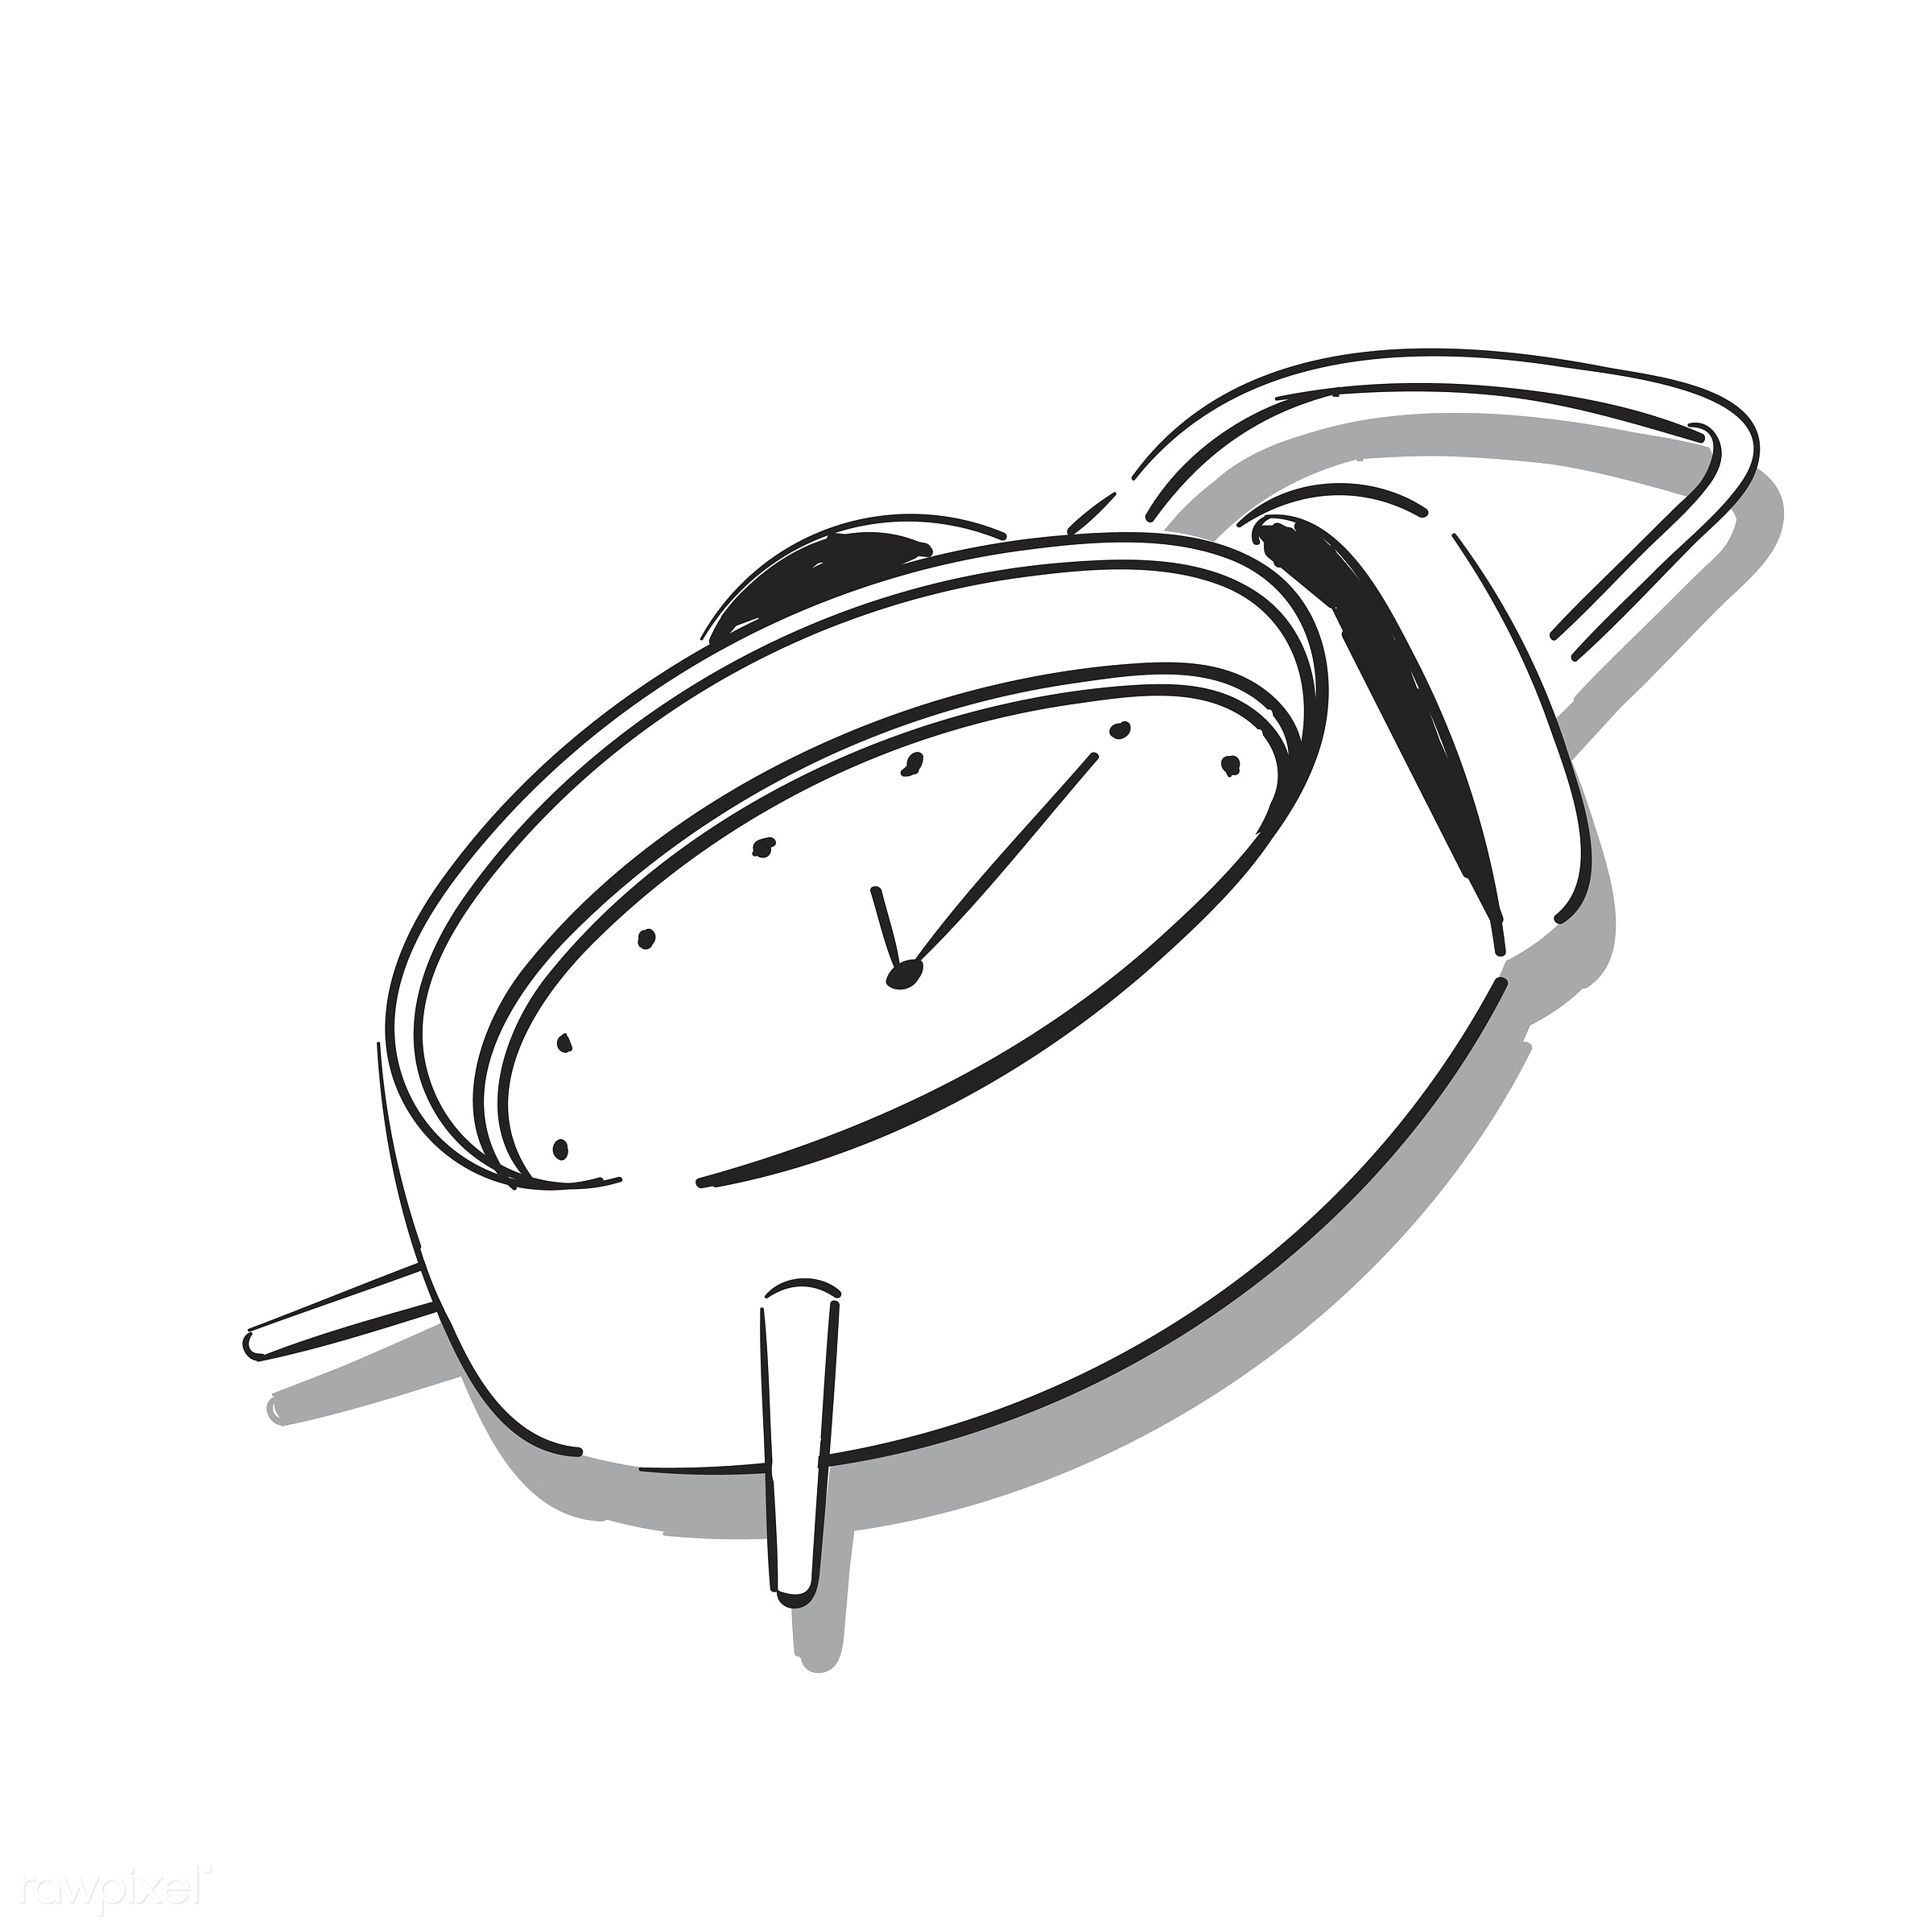 llustration drawing of alarm clock - illustration, icon, time, alarm, object, clock, art, minute, sketch, vintage, vector,...